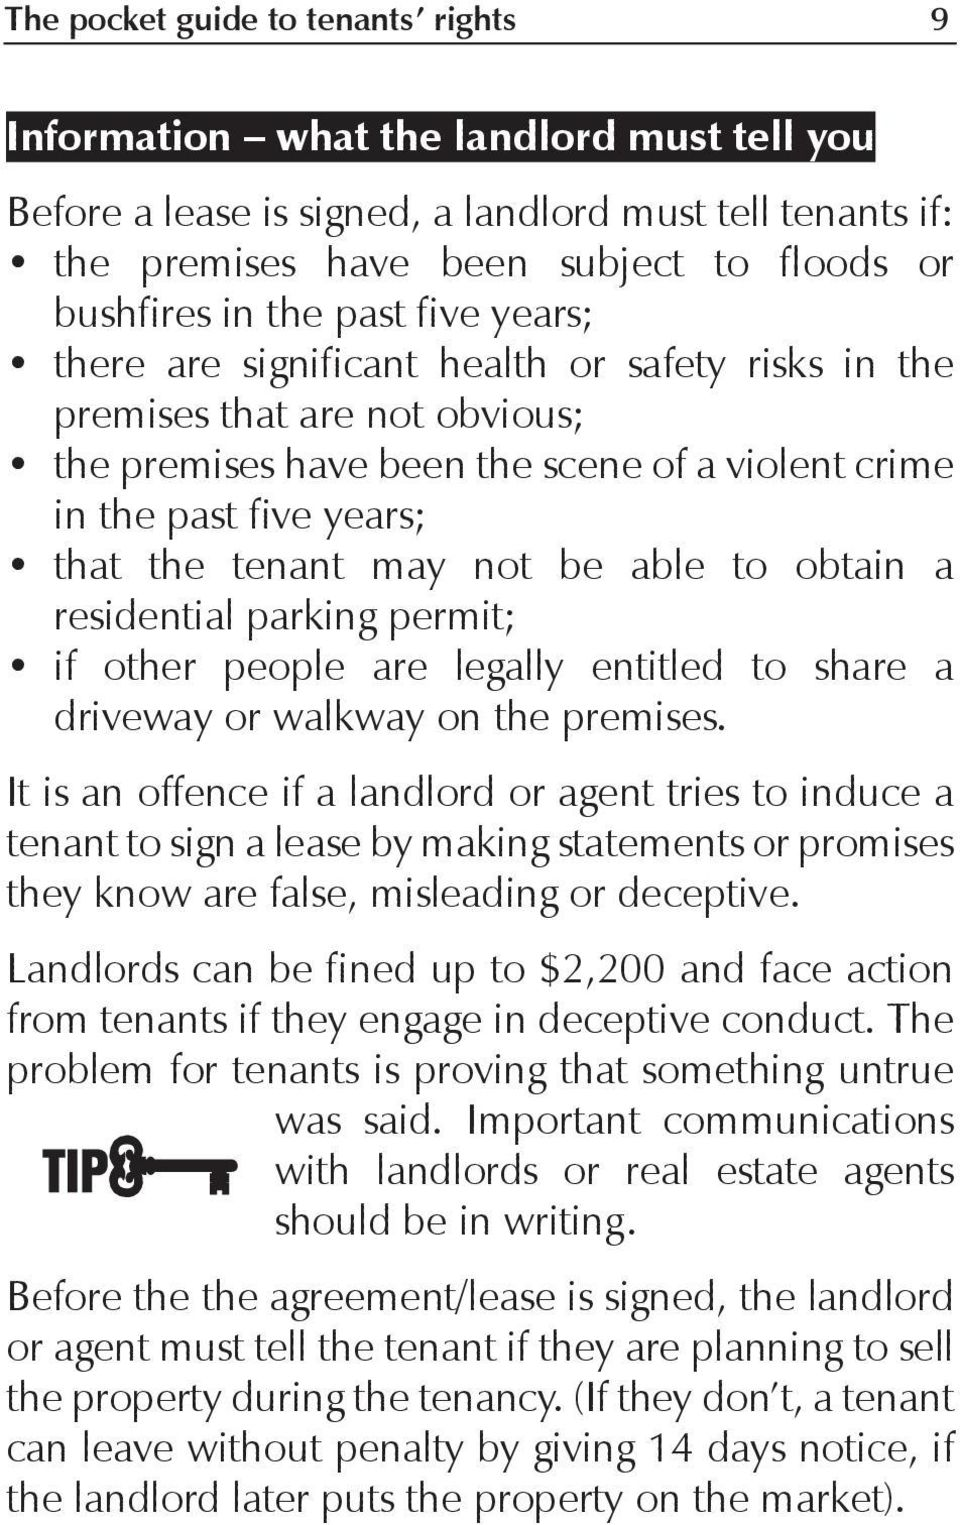 not be able to obtain a residential parking permit; if other people are legally entitled to share a driveway or walkway on the premises.